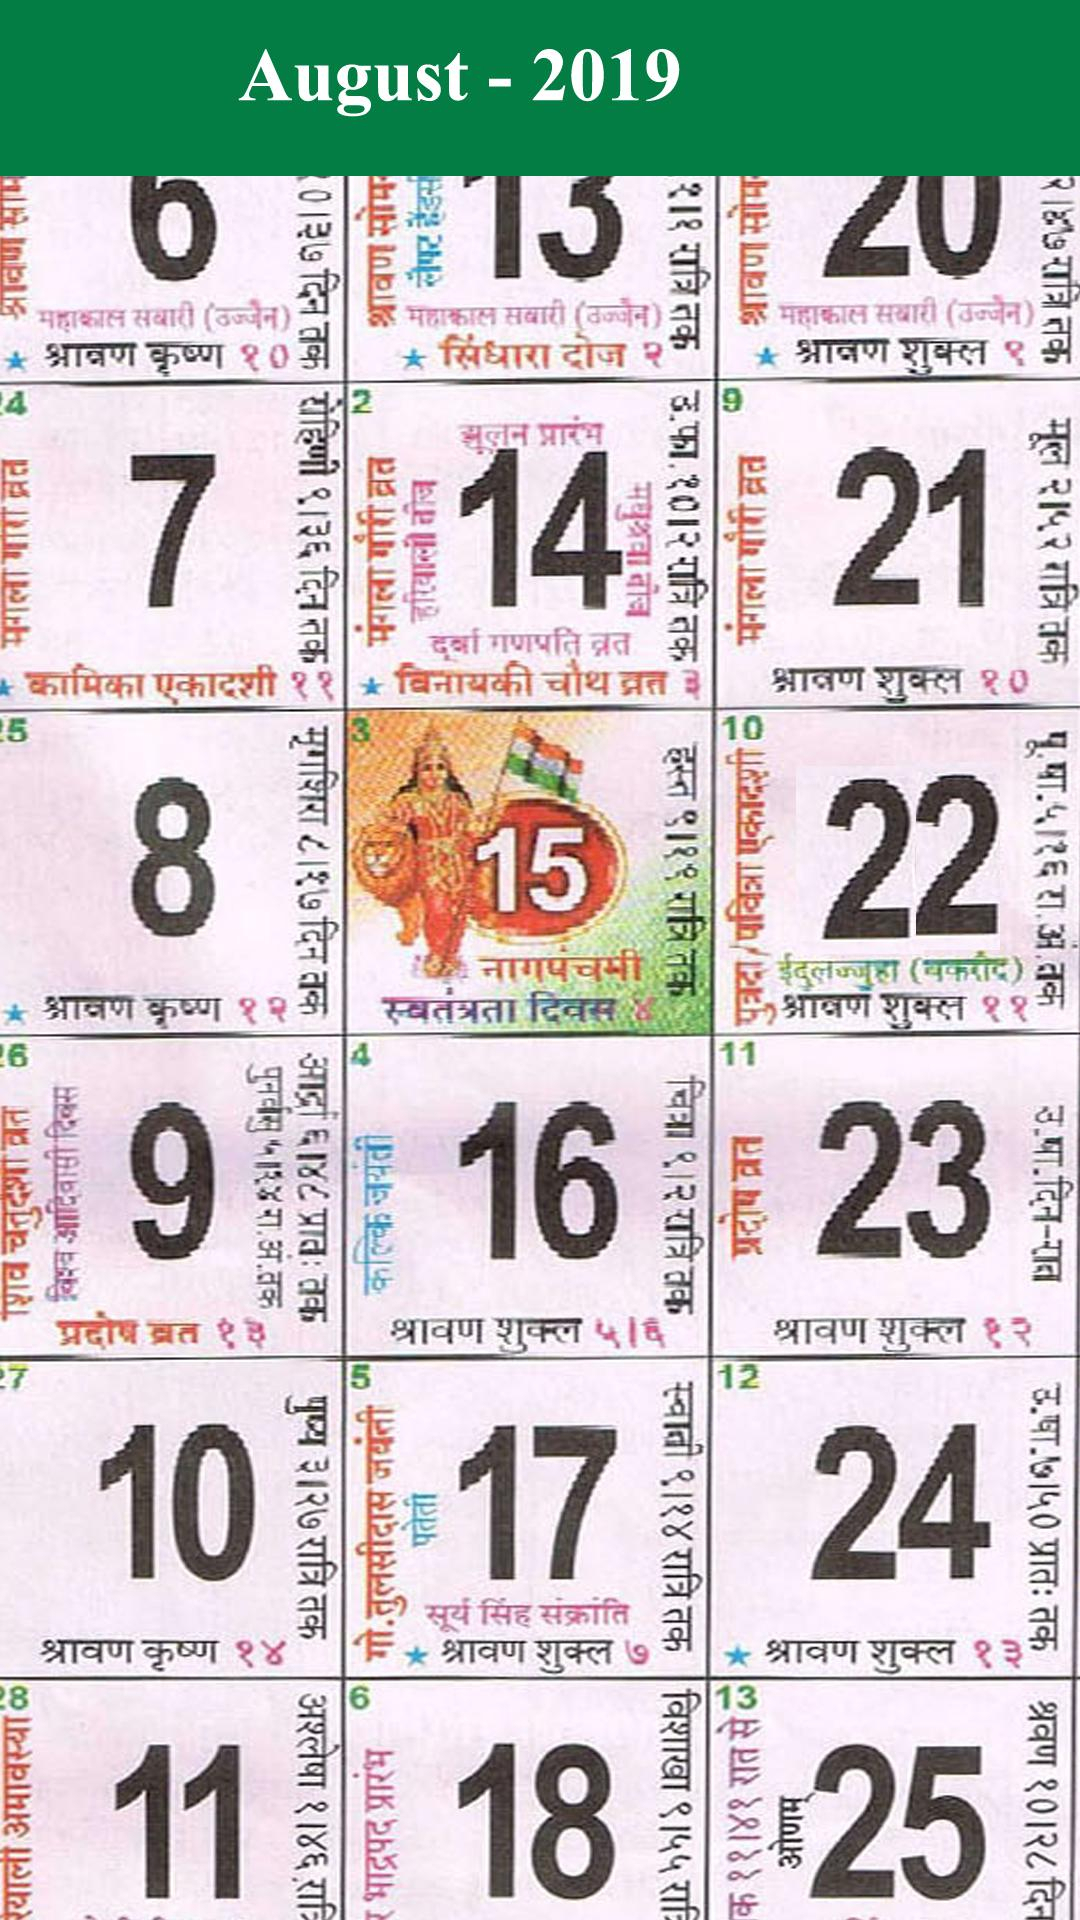 Hindi Calendar 2019 For Android  Apk Download pertaining to Khalsa Heera Jantri 2020